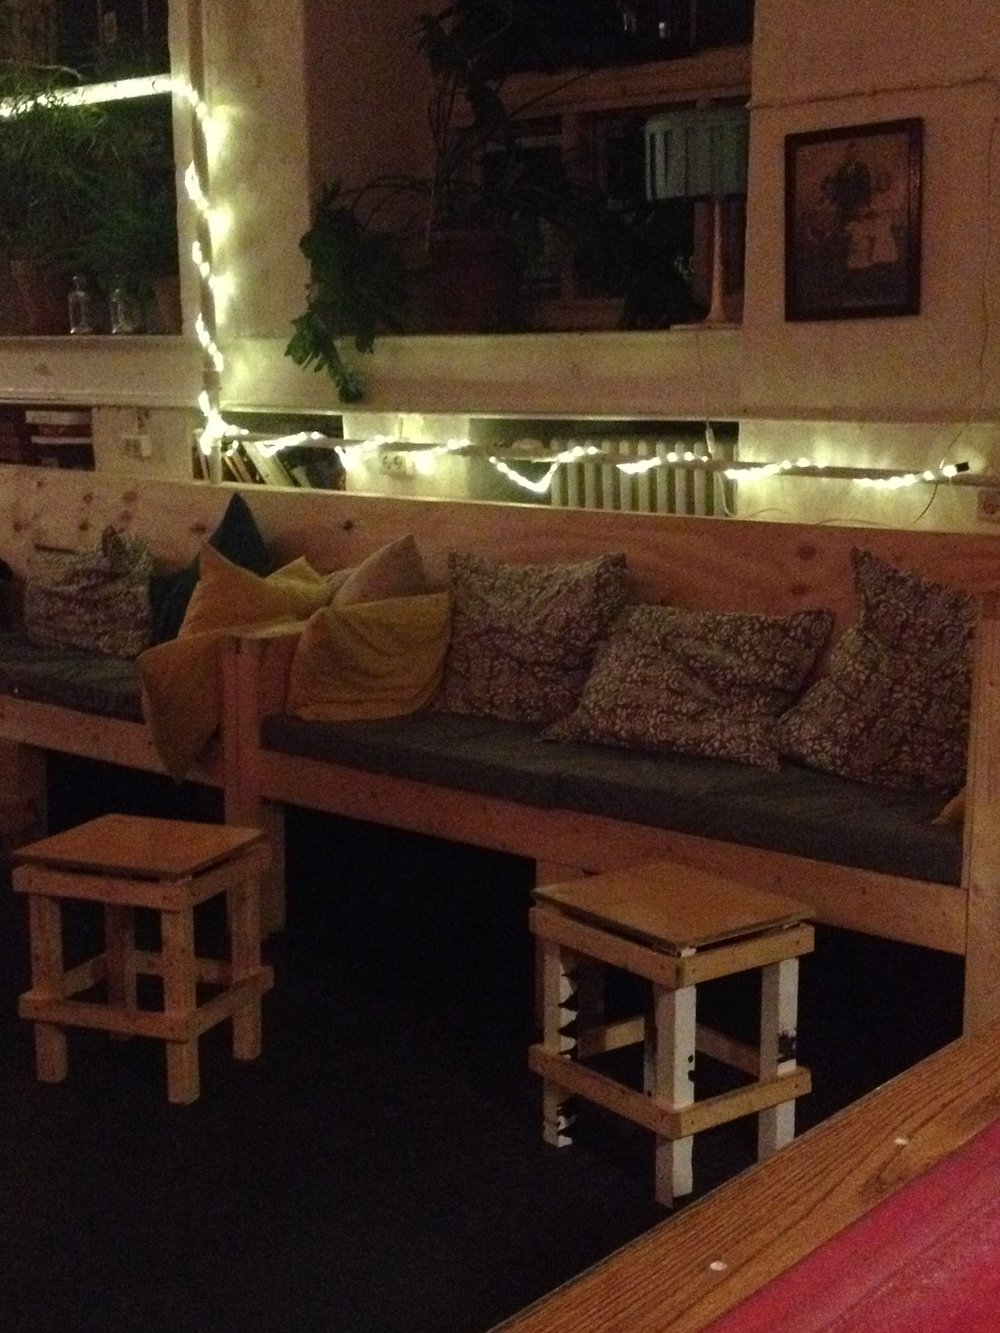 Cozy Couches at Sleep in Heaven Hostel   Tall Girl Meets World